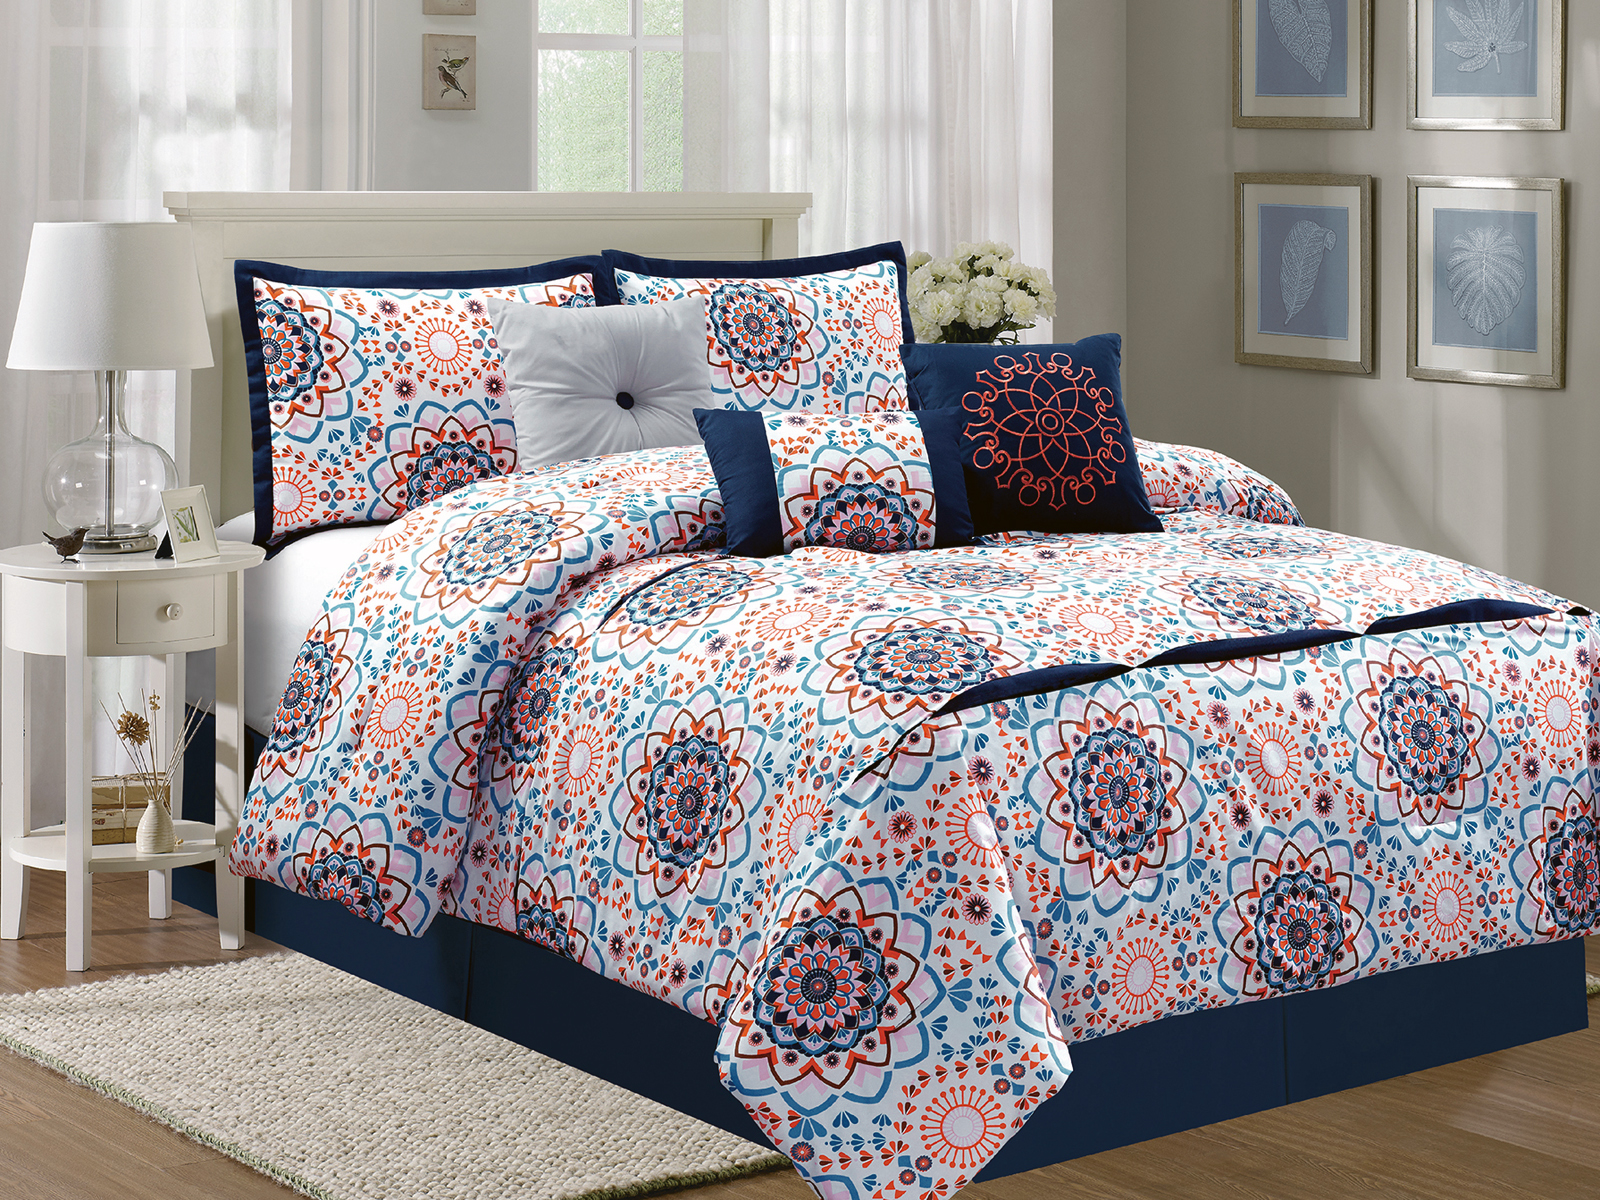 7 Pc Geometric Floral Embroidery Comforter Set Blue Orange Pink Off White King 642709899907 Ebay